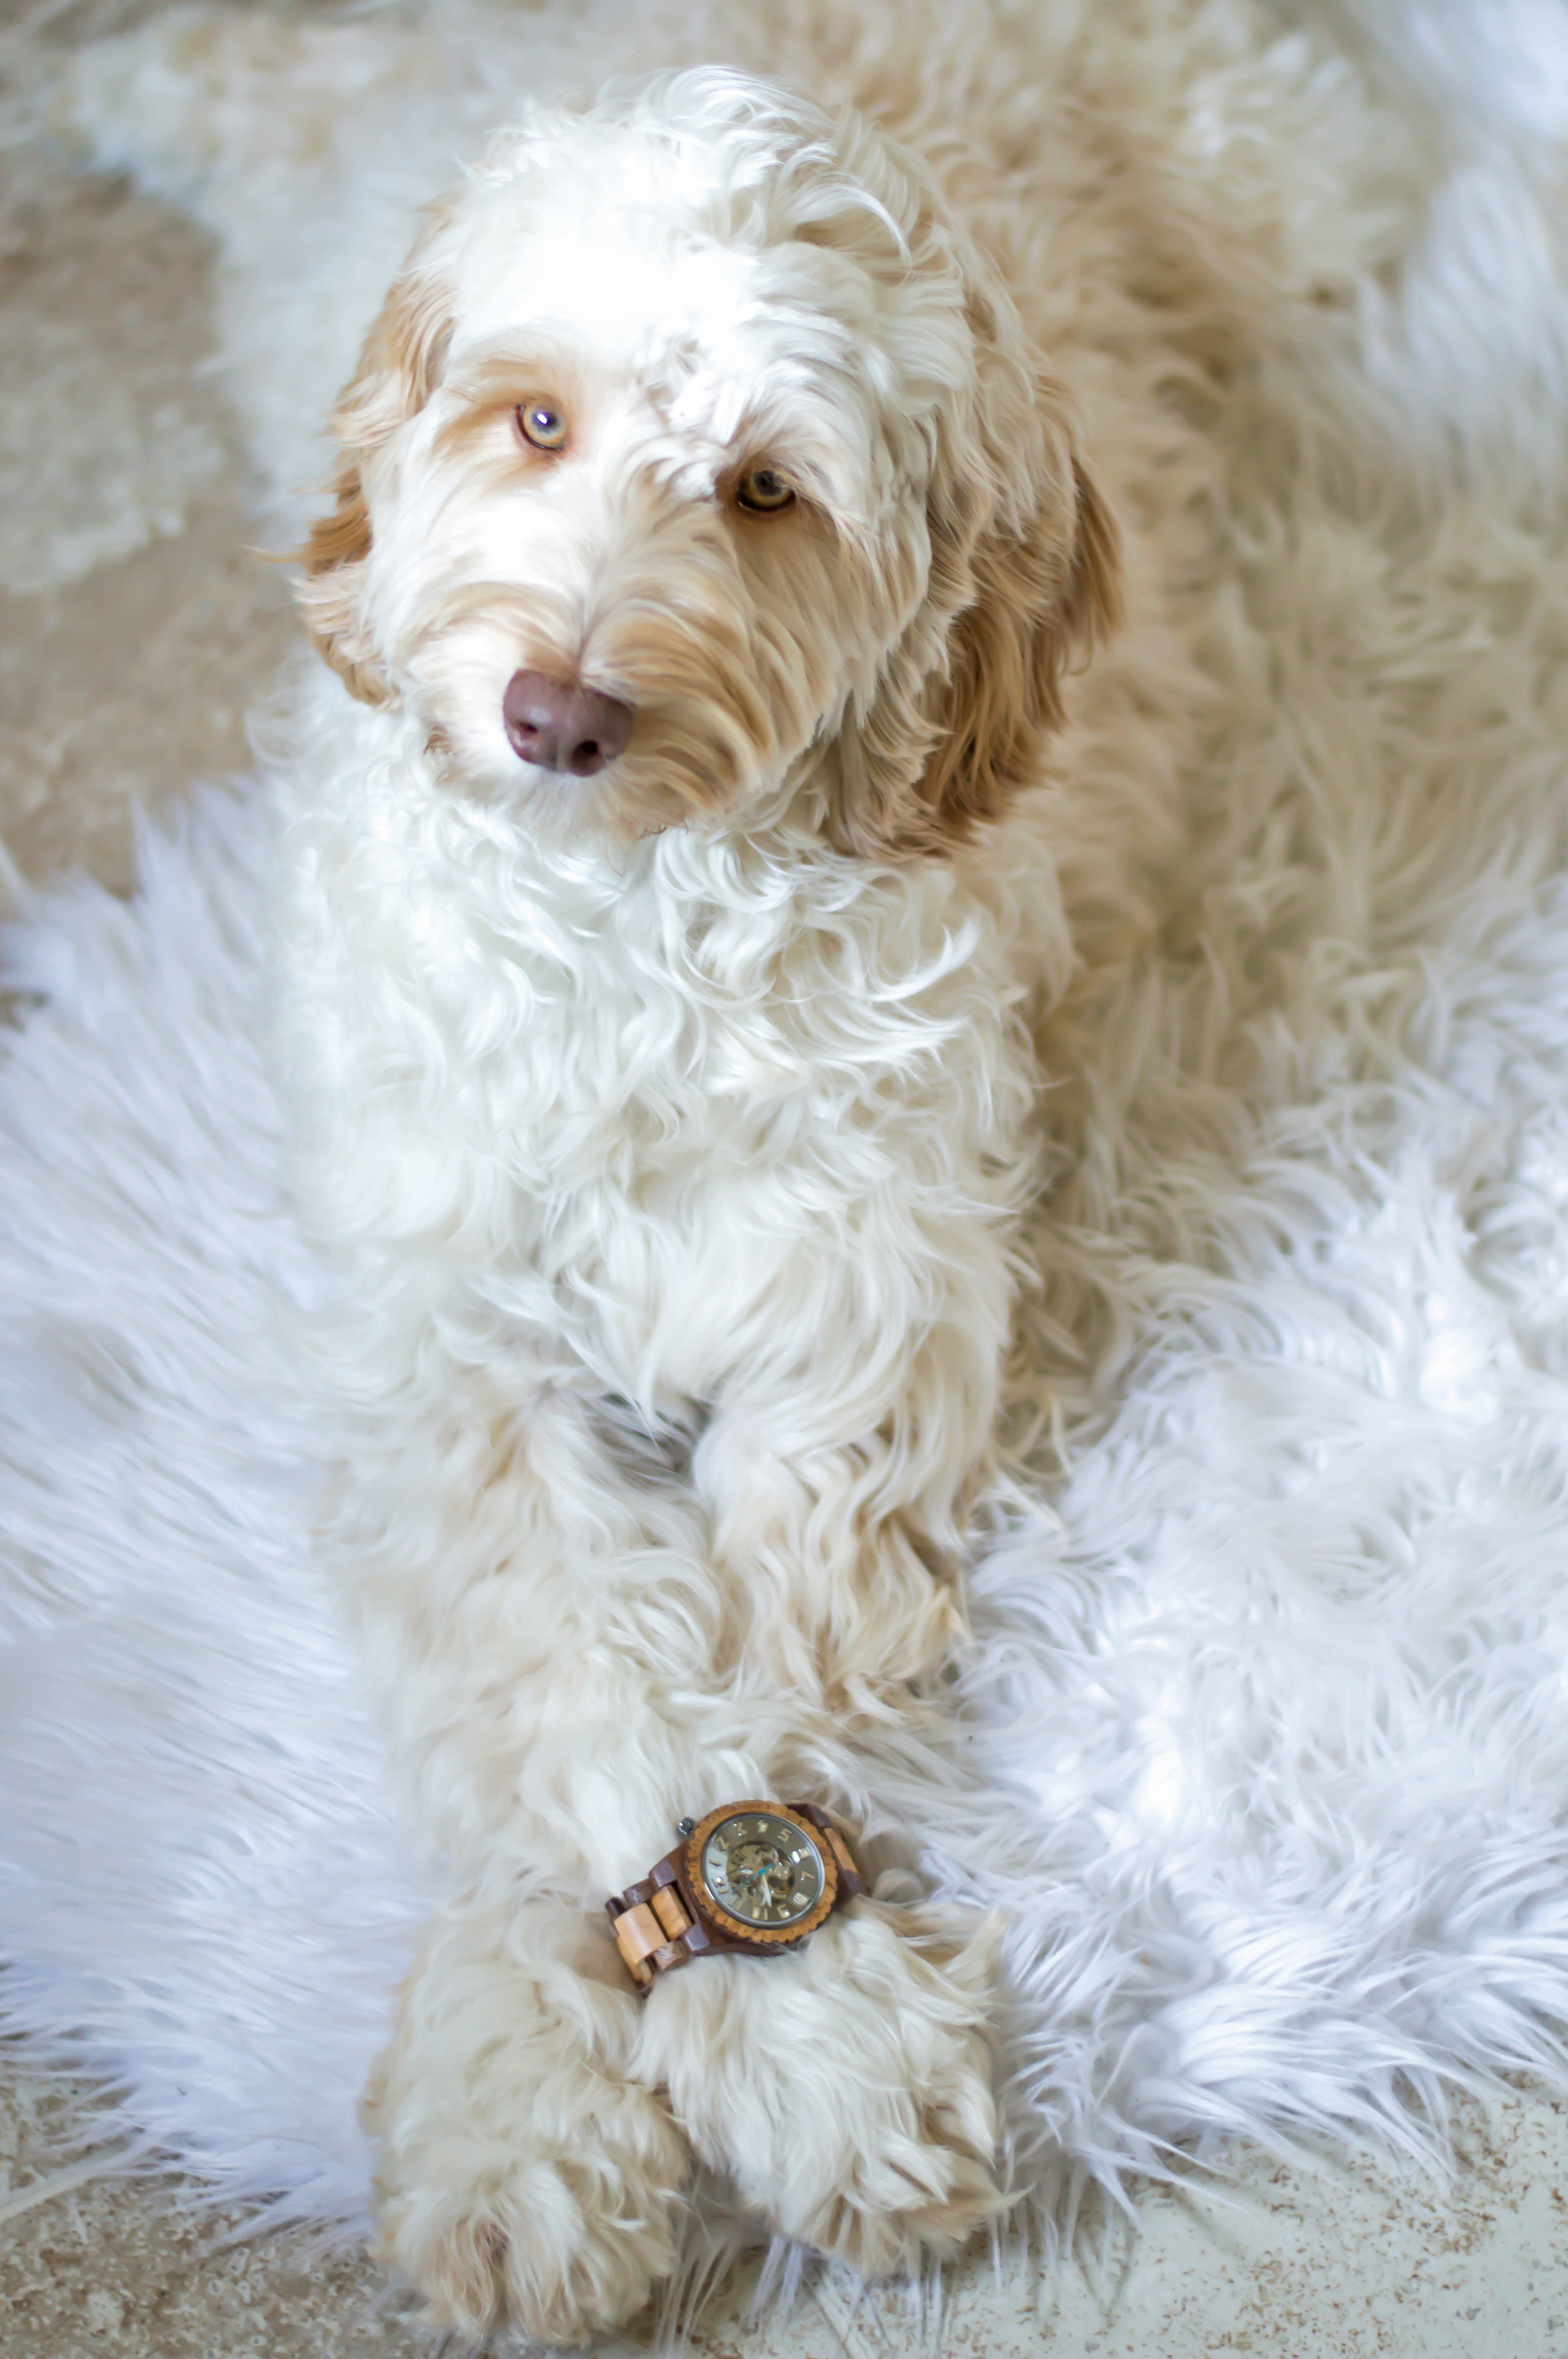 styelled-elle-elisabeth-fashion-style-blogger-jord-wood-watches-luxury-watch-dover-series-valentines-day-for-him-ootd-australian-labradoodle-08